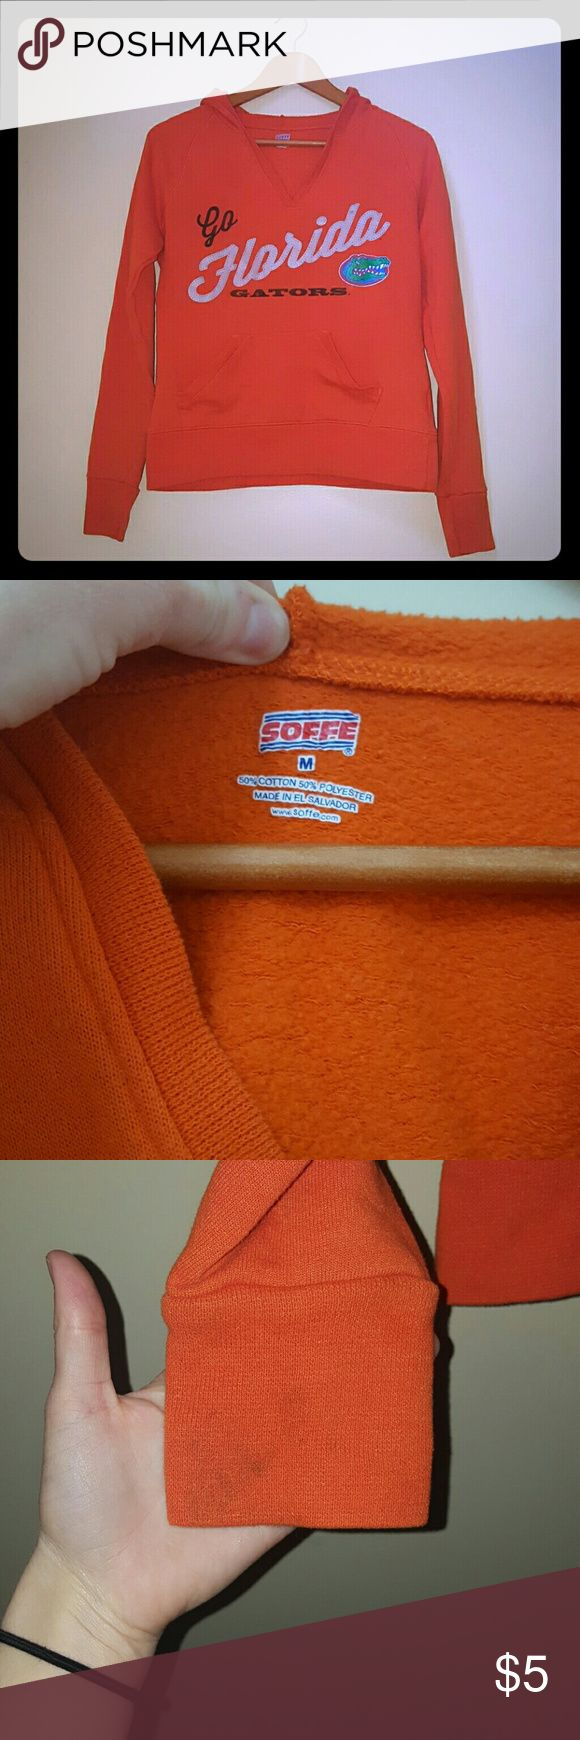 Soffe Gators hoodie This is a throw on and go kinda hoodie. Really comfy. Florida gators logo. Their is a minor stain on the bottom arm as shown in pictures. Otherwise in good condition. Soffe Jackets & Coats